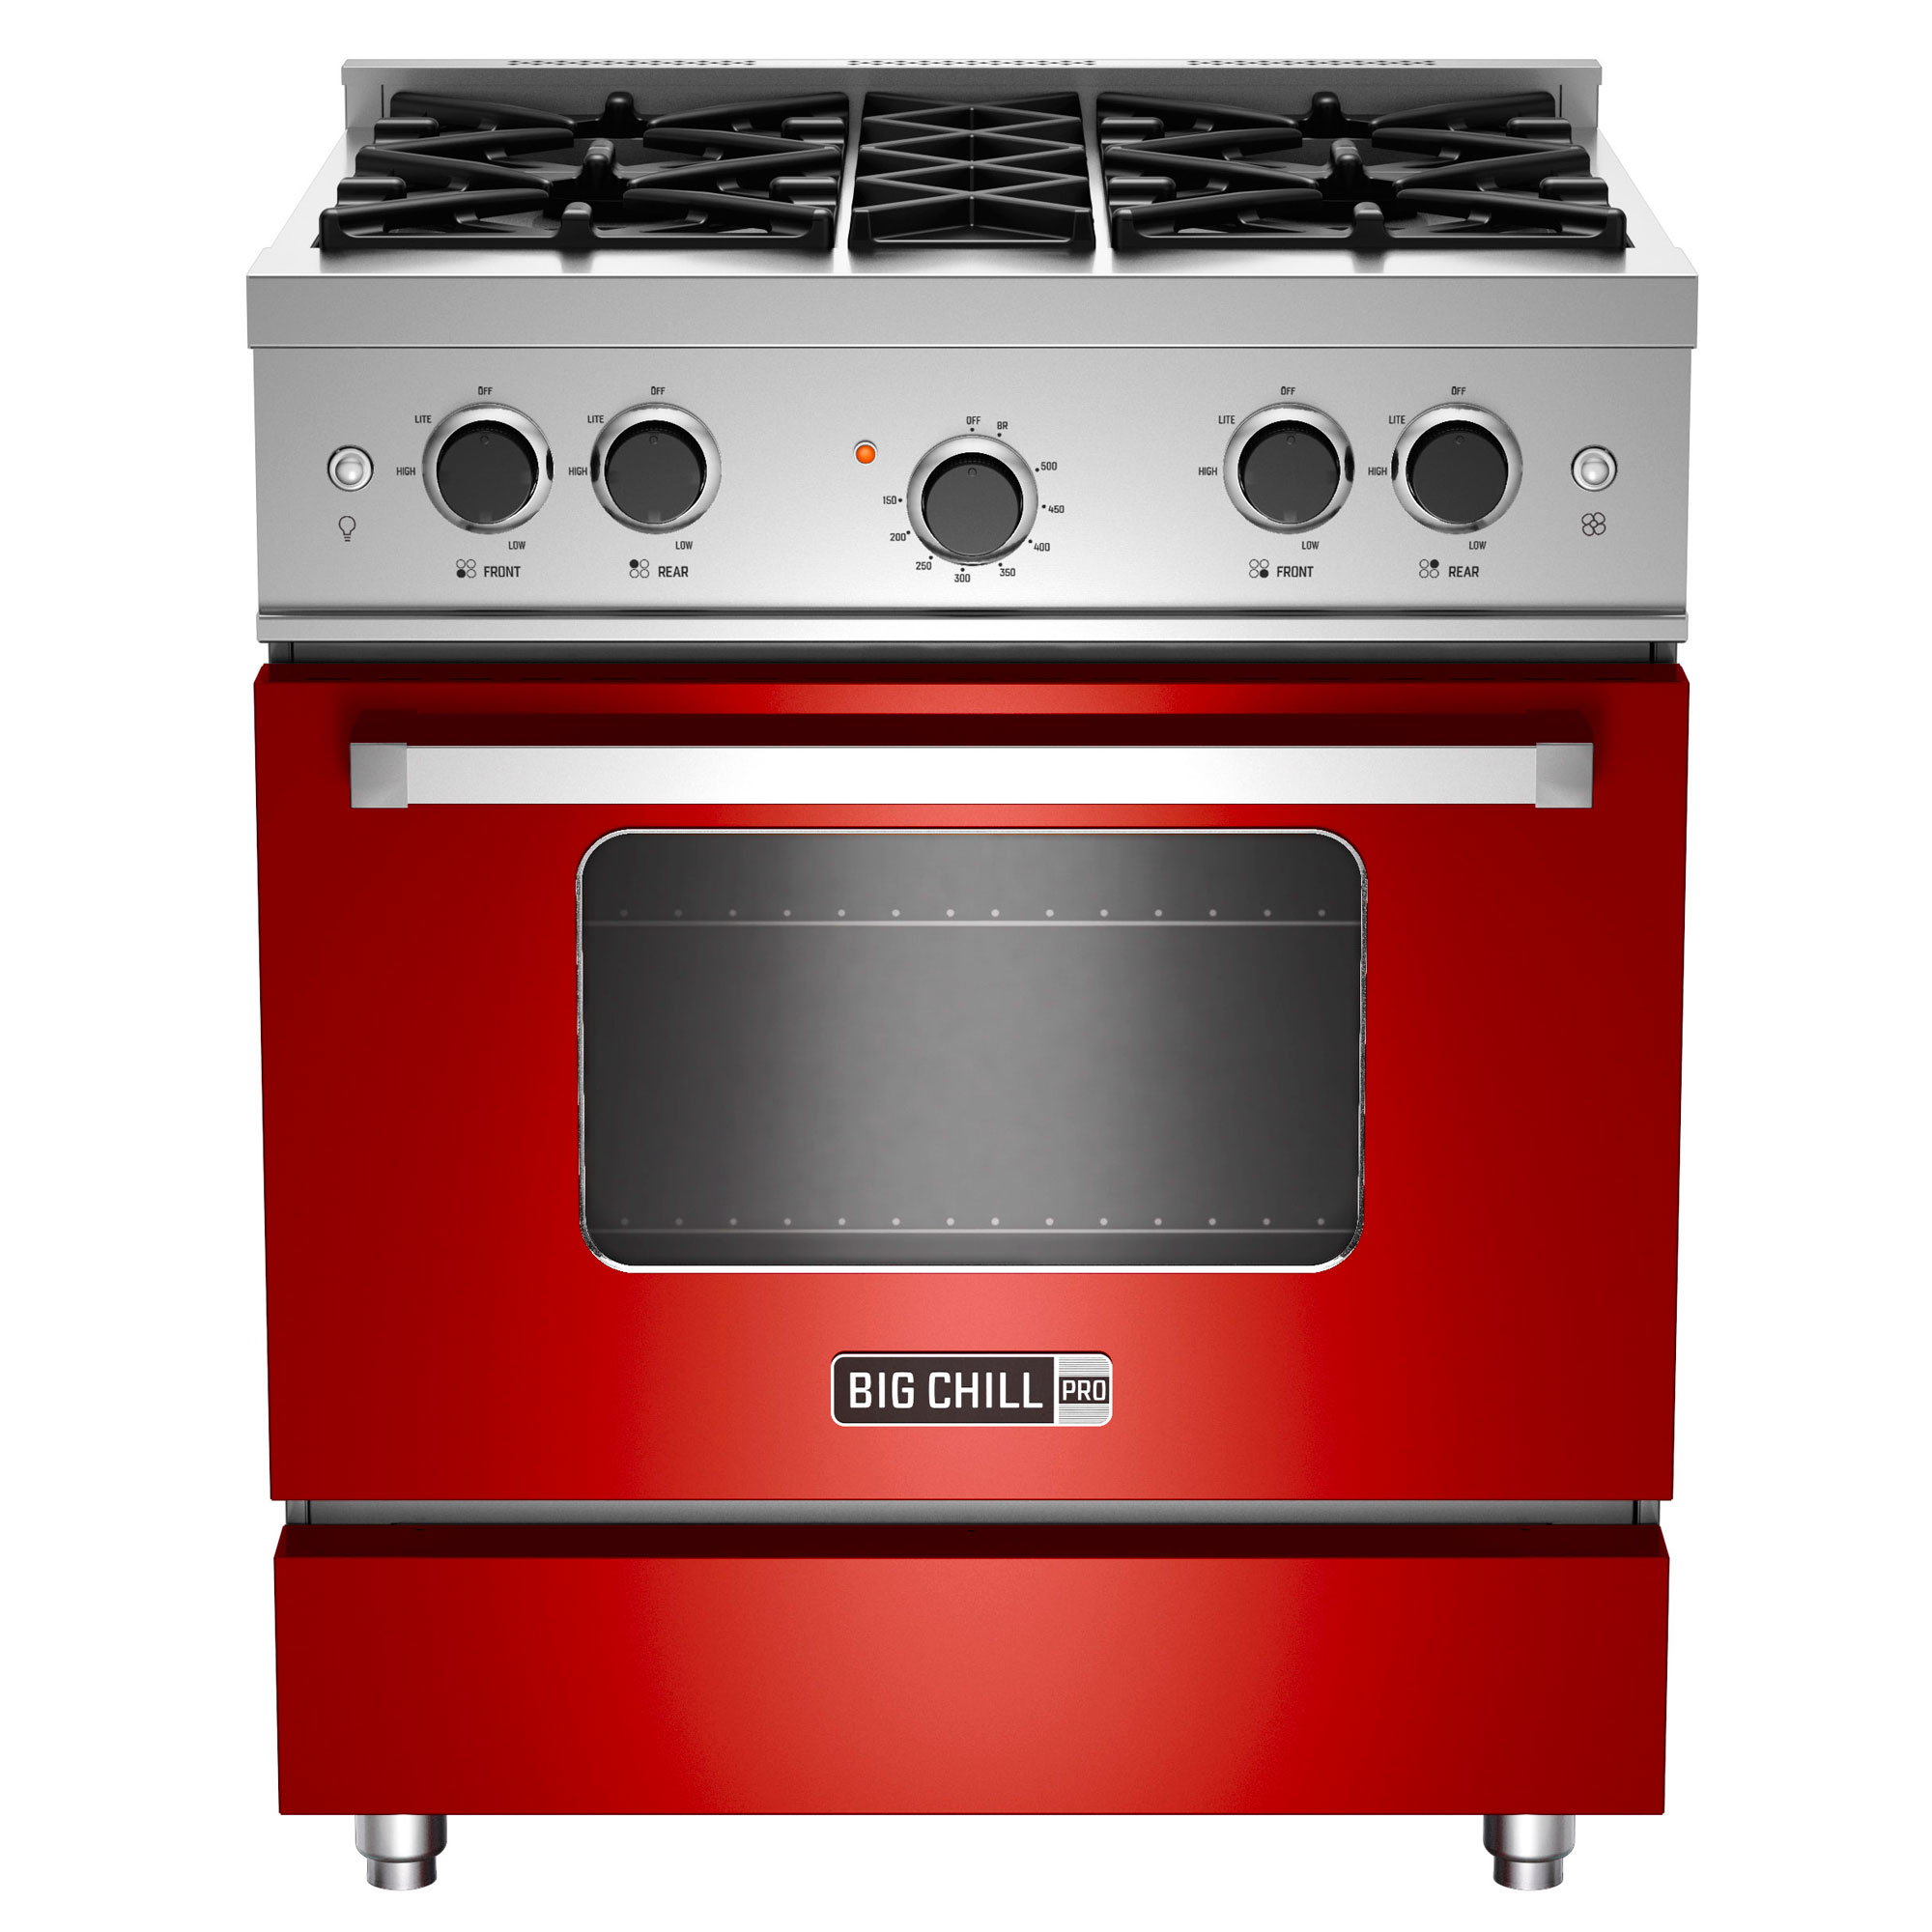 See ya stainless Brilliantly colored appliances are hitting the